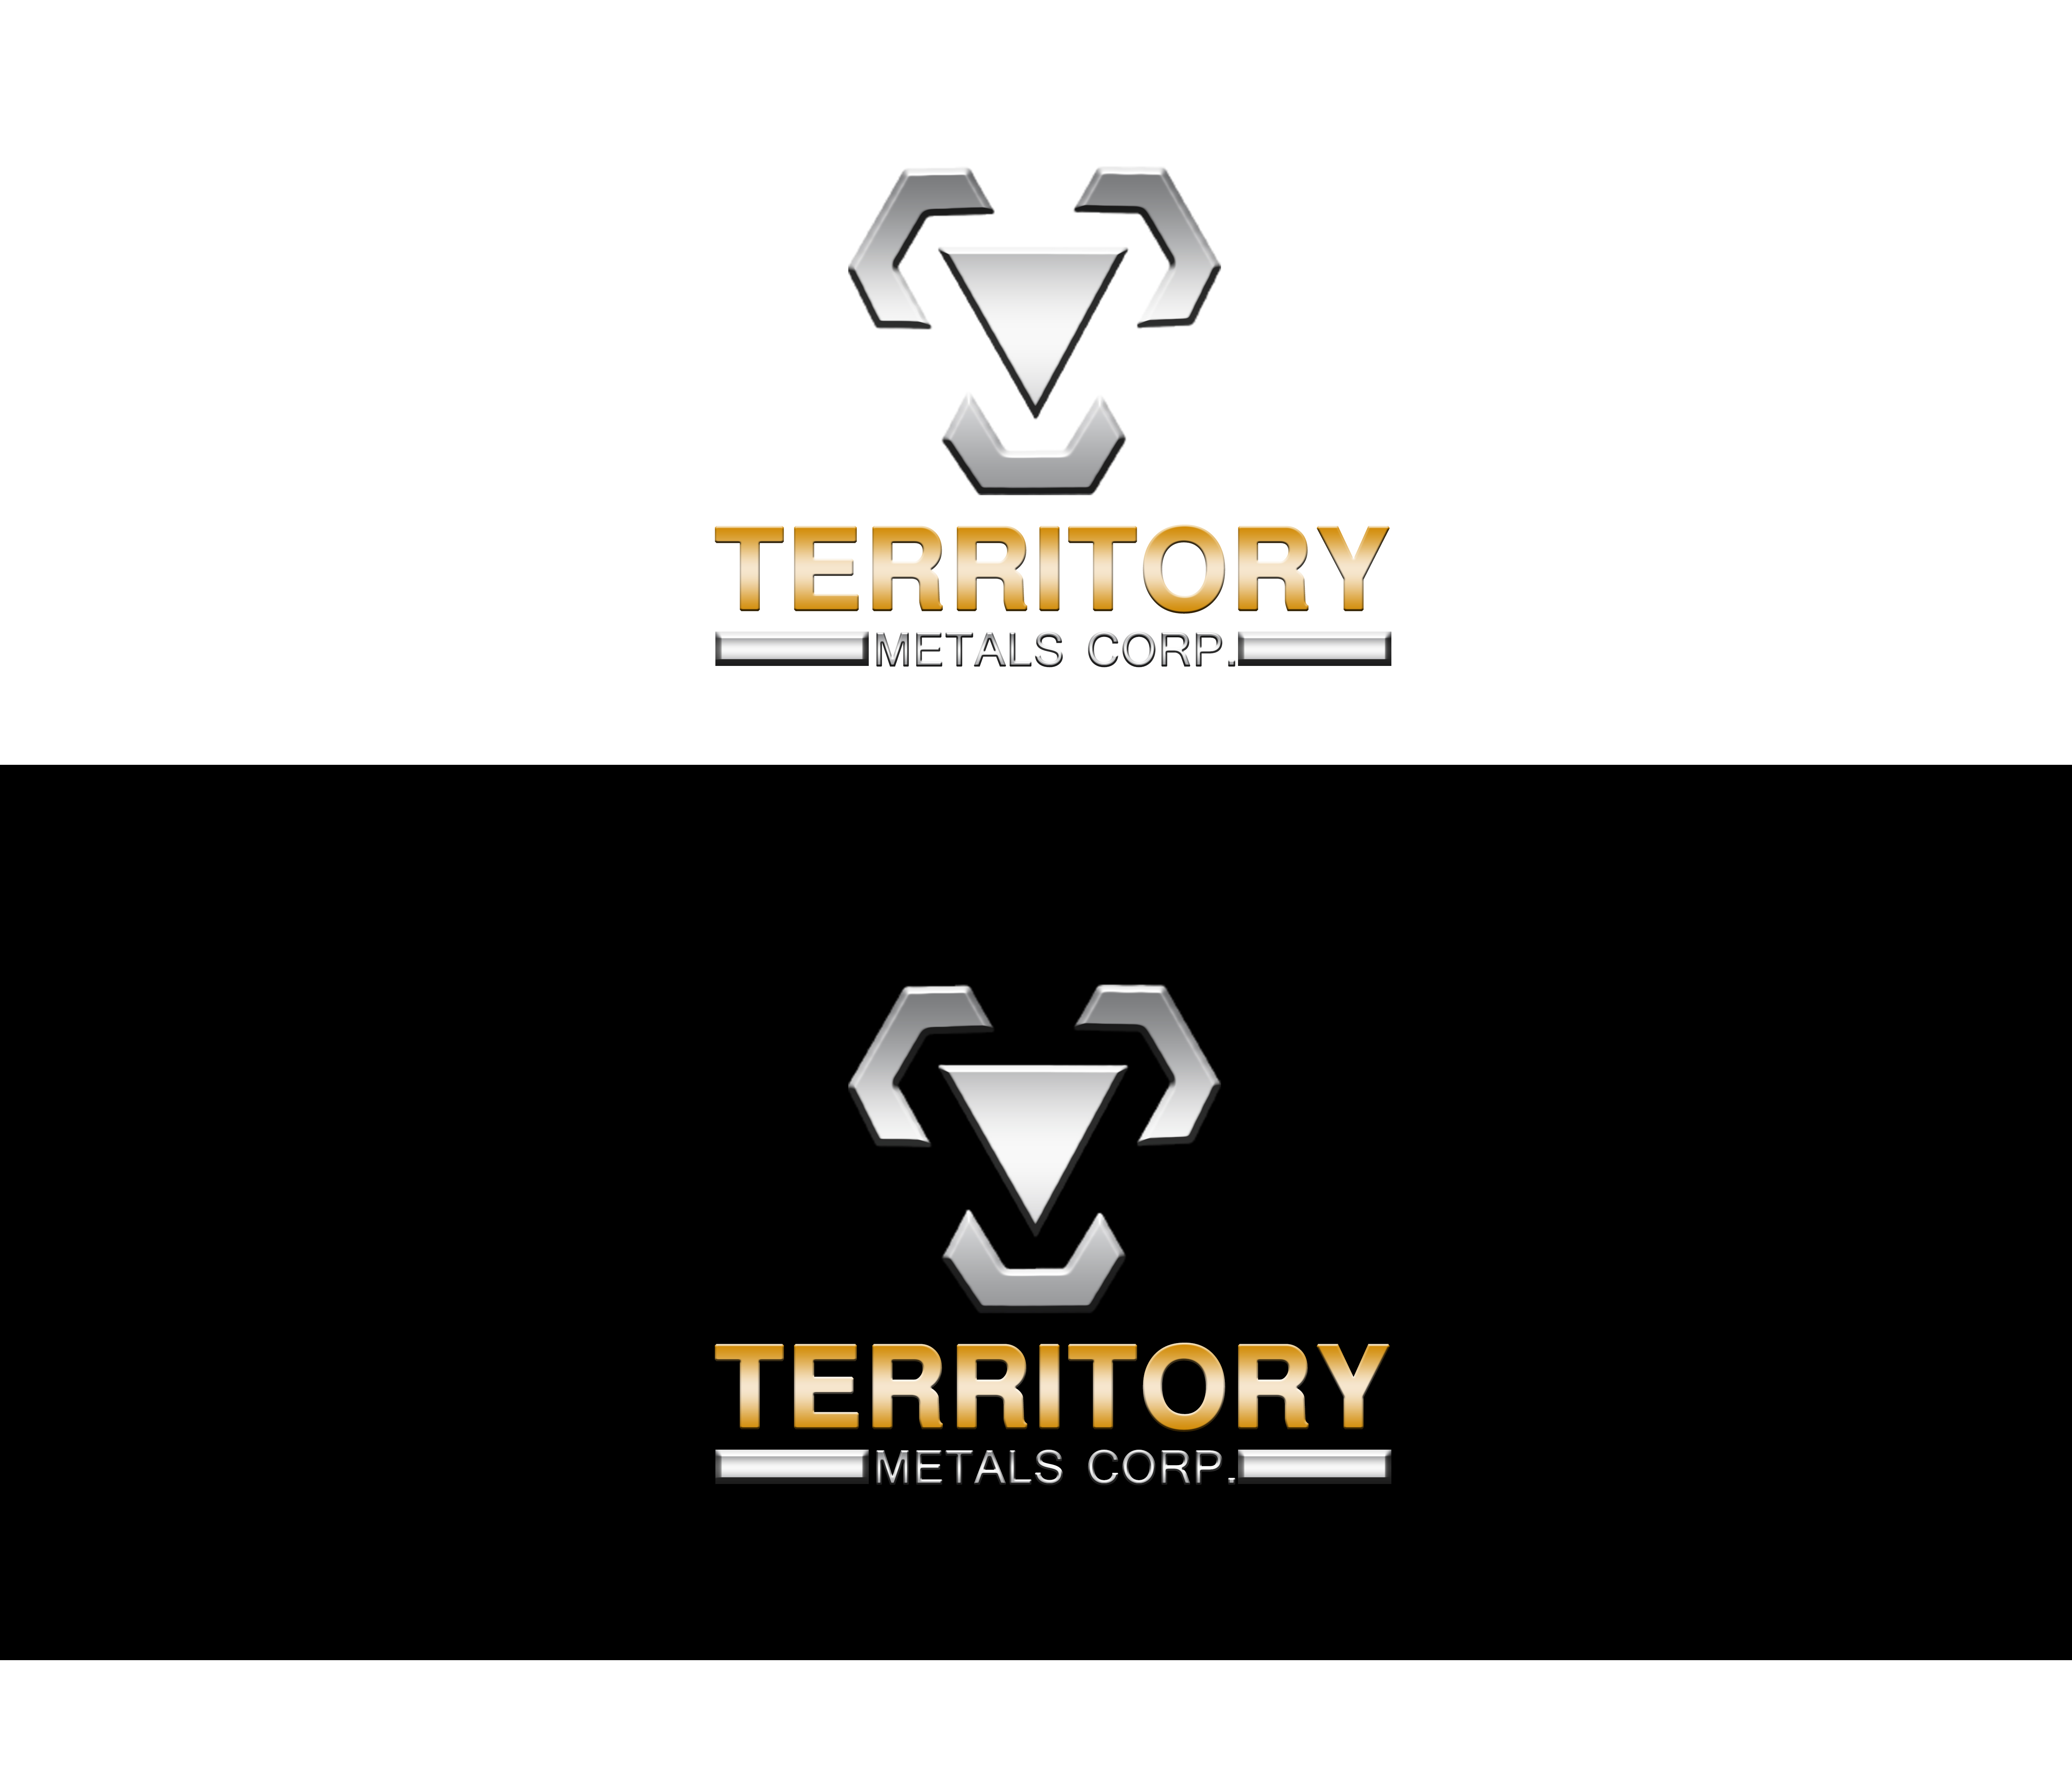 Logo Design by JSDESIGNGROUP - Entry No. 259 in the Logo Design Contest Unique Logo Design Wanted for Territory Metals Corp..